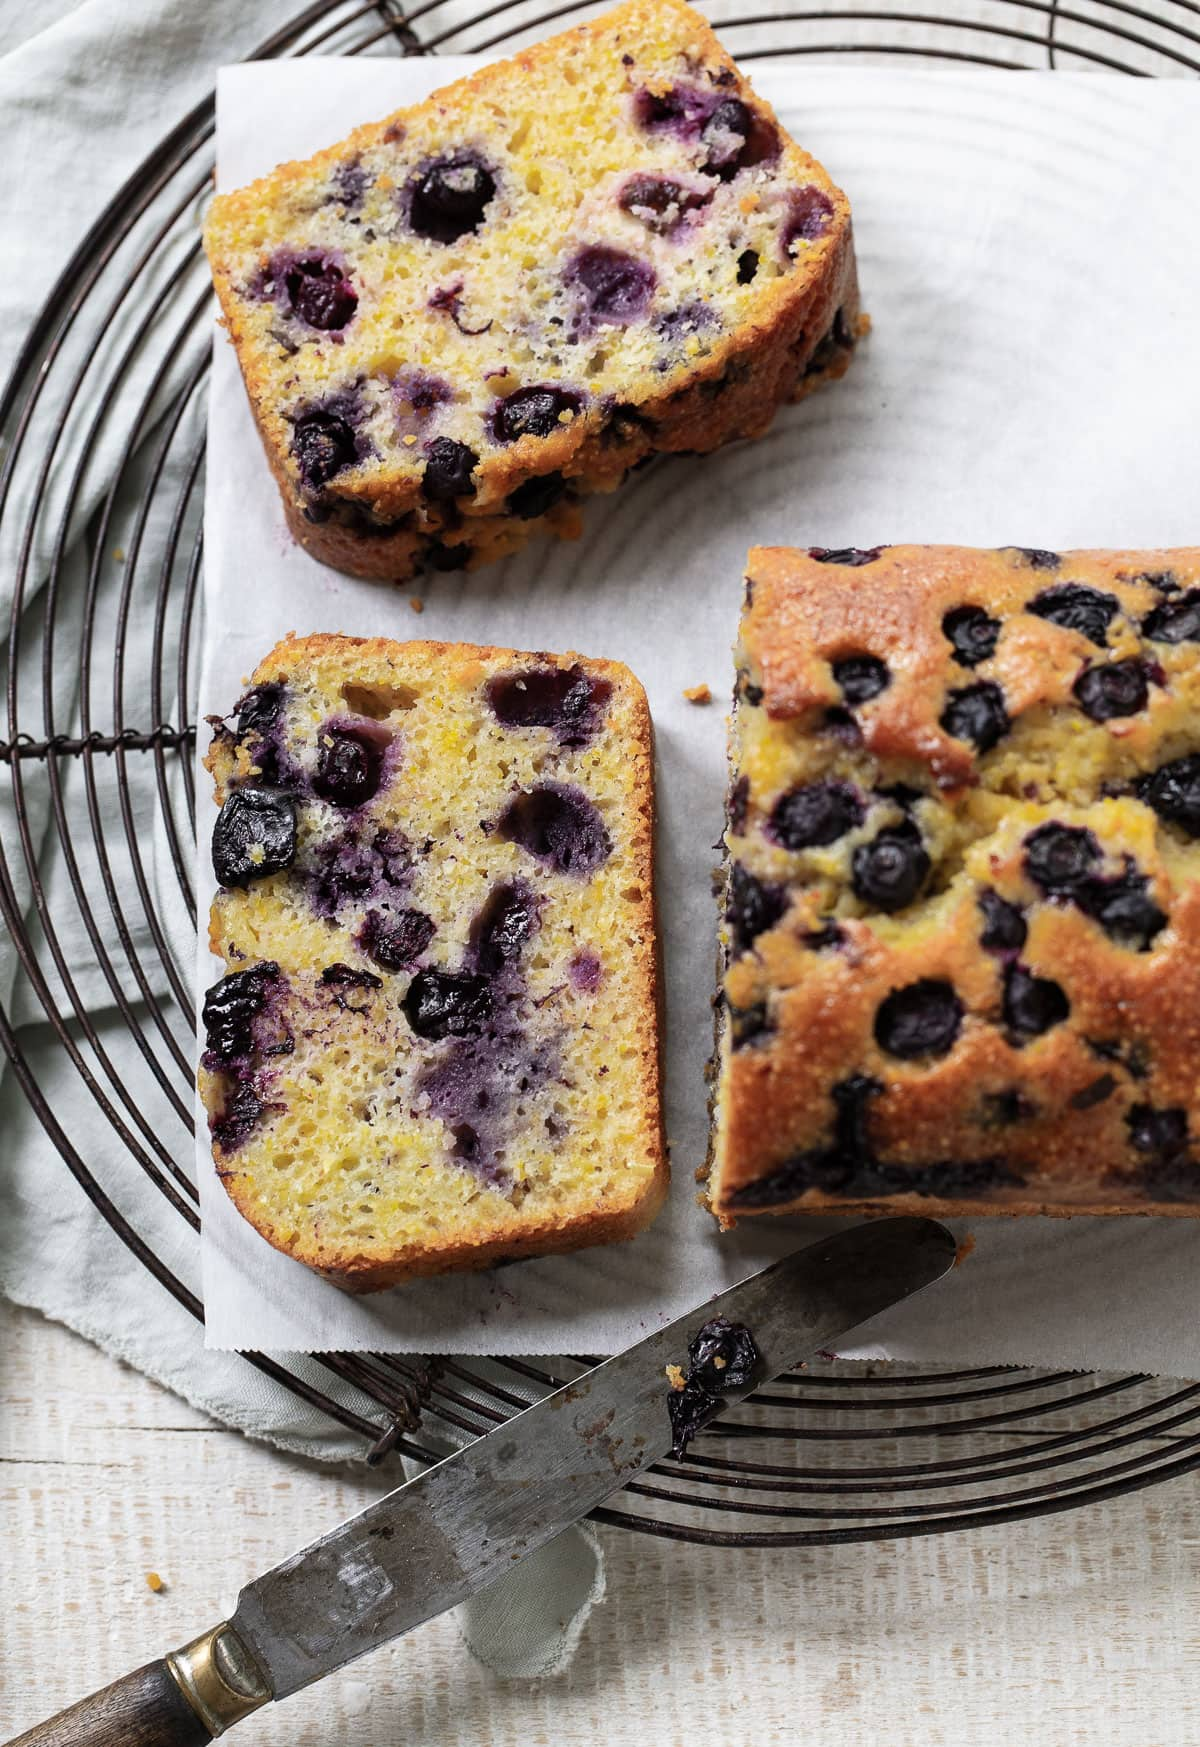 Blueberry loaf cake sliced into thick pieces on a cooling rack